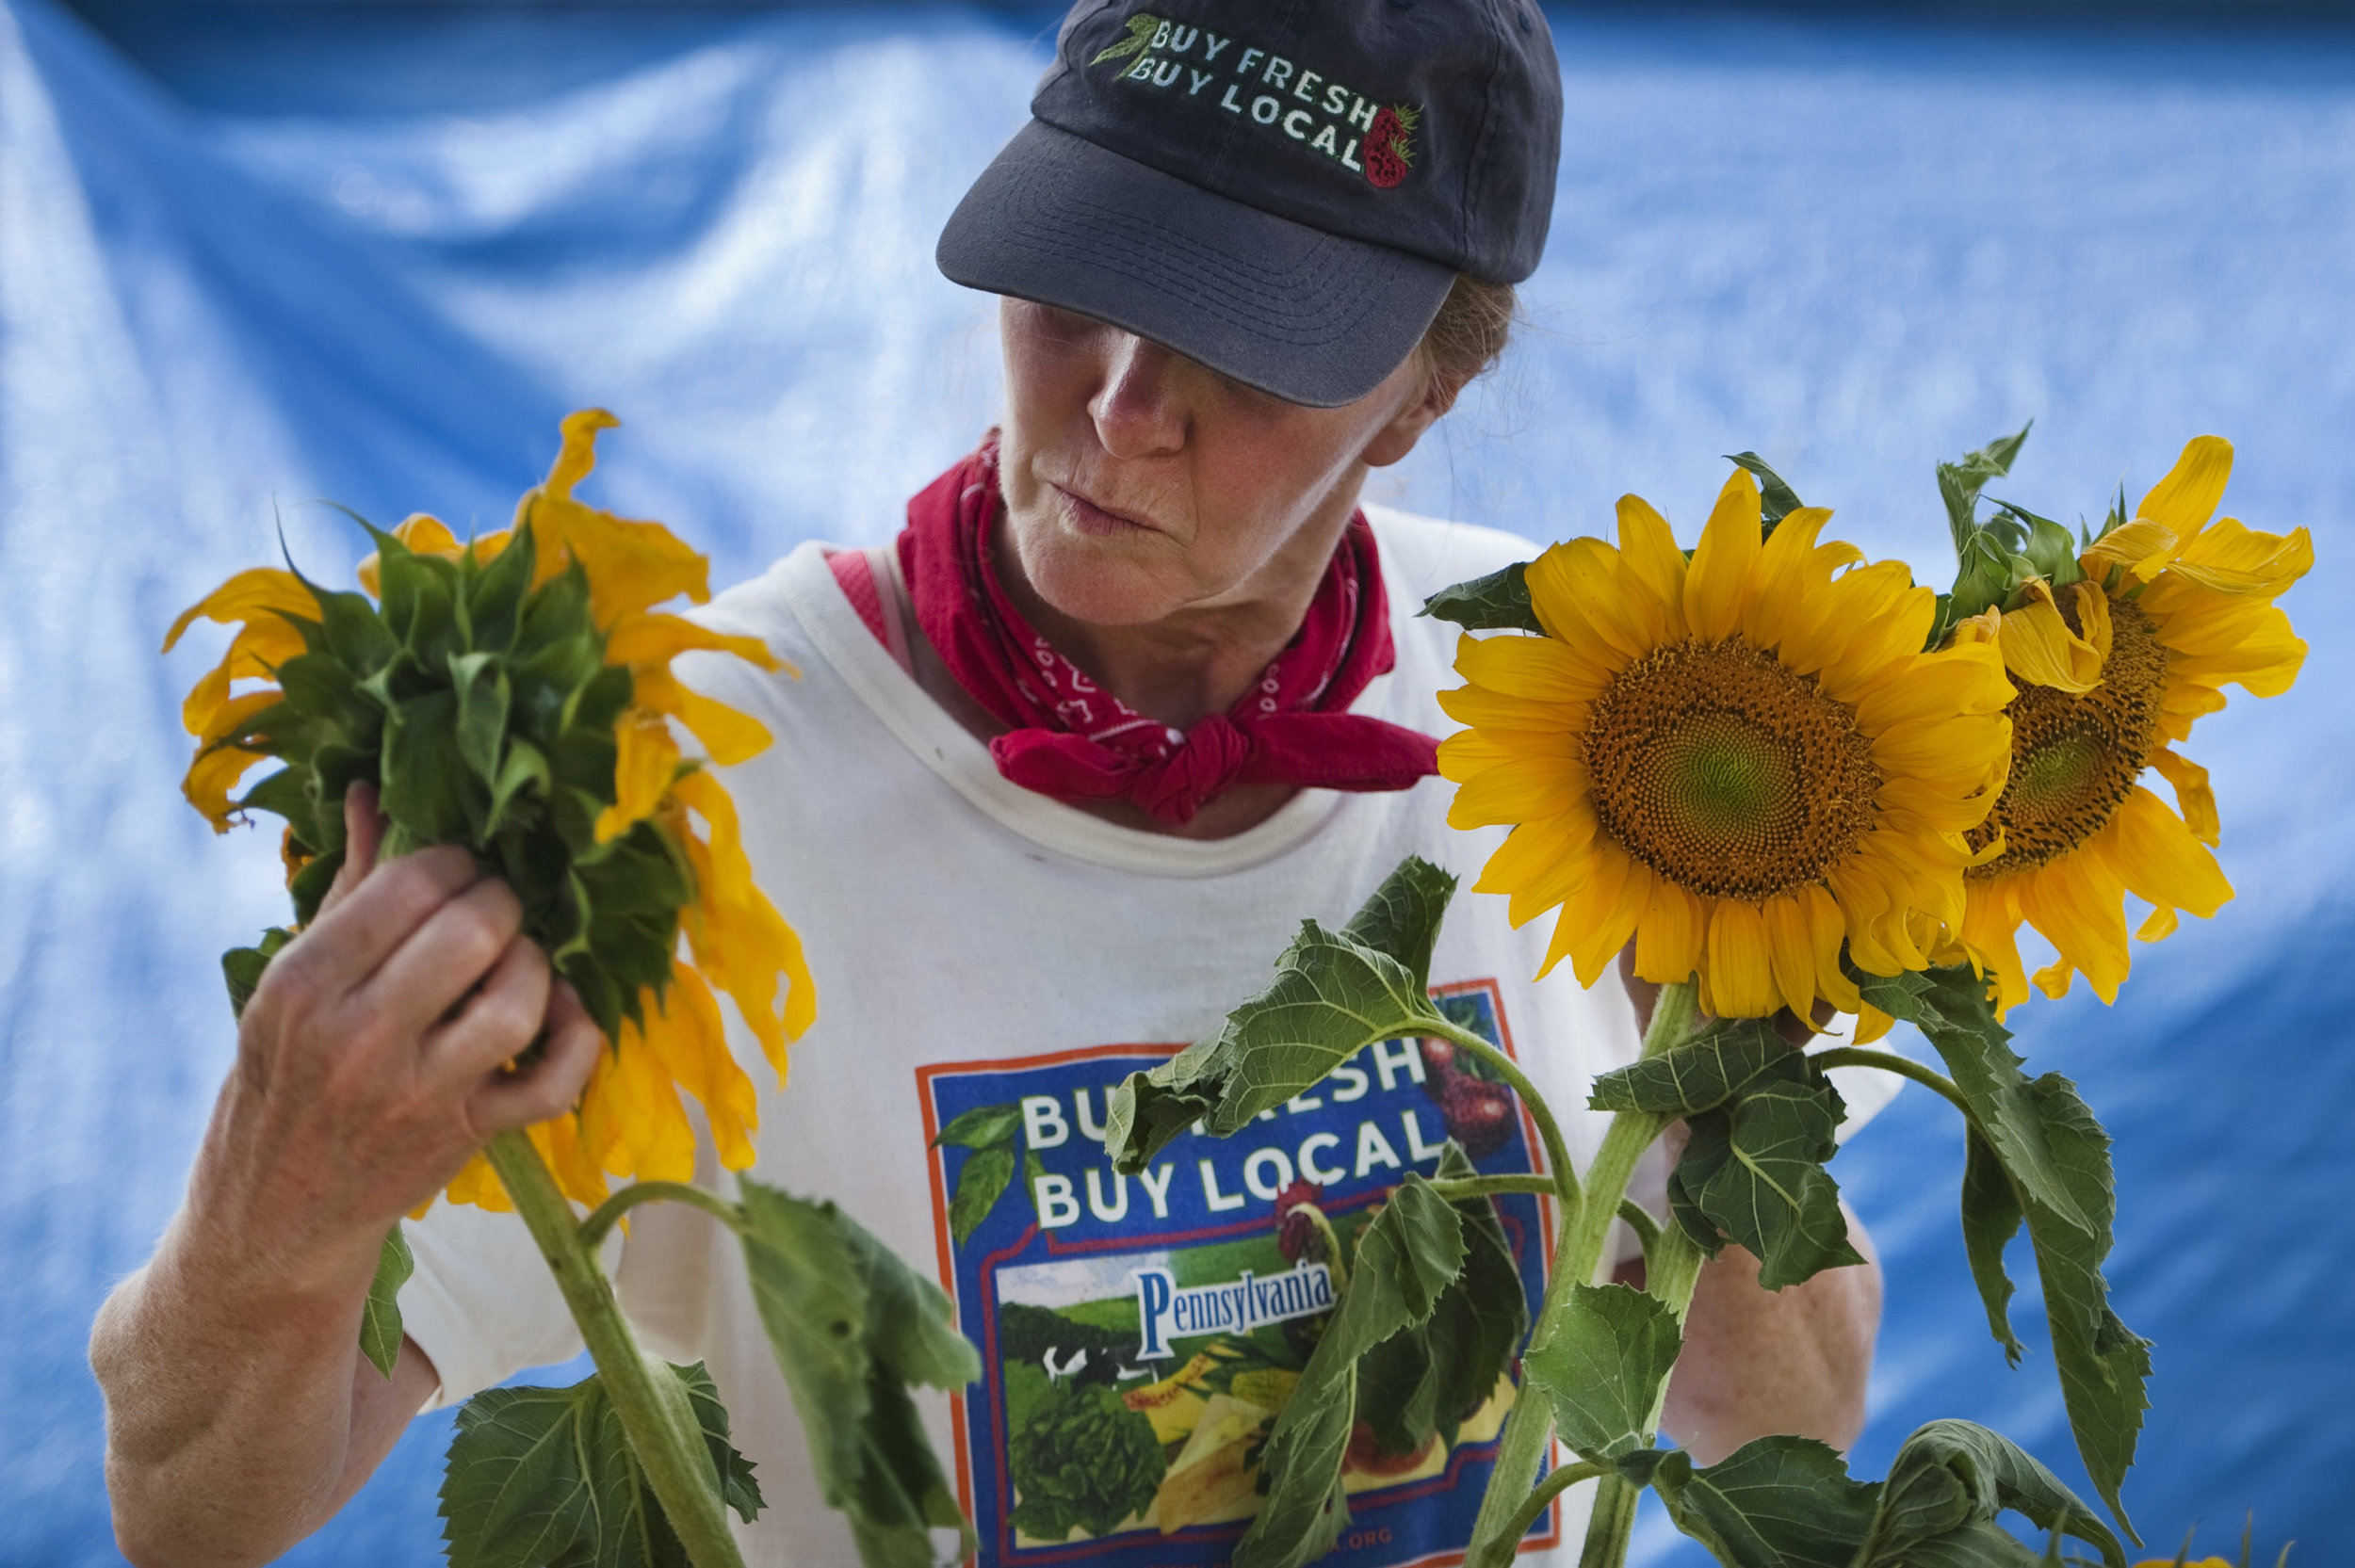 Deborah Goeller of Morris Farm in Irwin places her sunflowers in a container during the Murrysville Farmer's Market on Thursday, July 21, 2016.